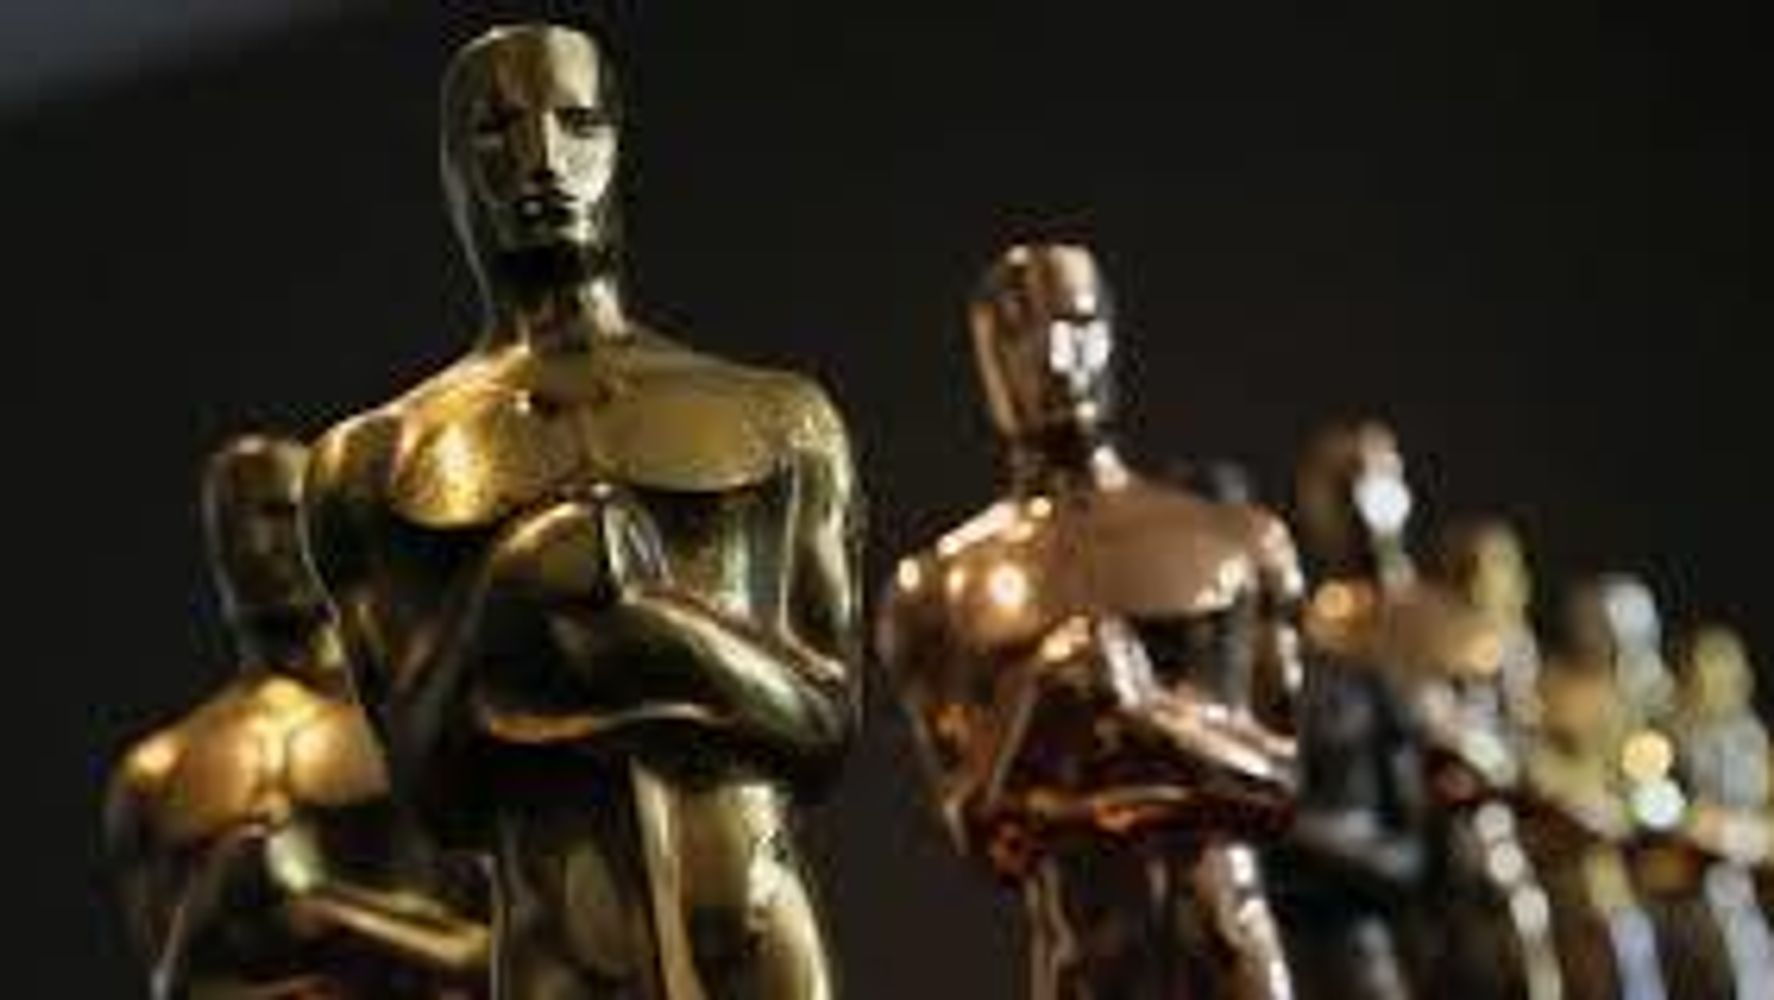 Alternative Oscars! What If The Academy Awards Got It Right